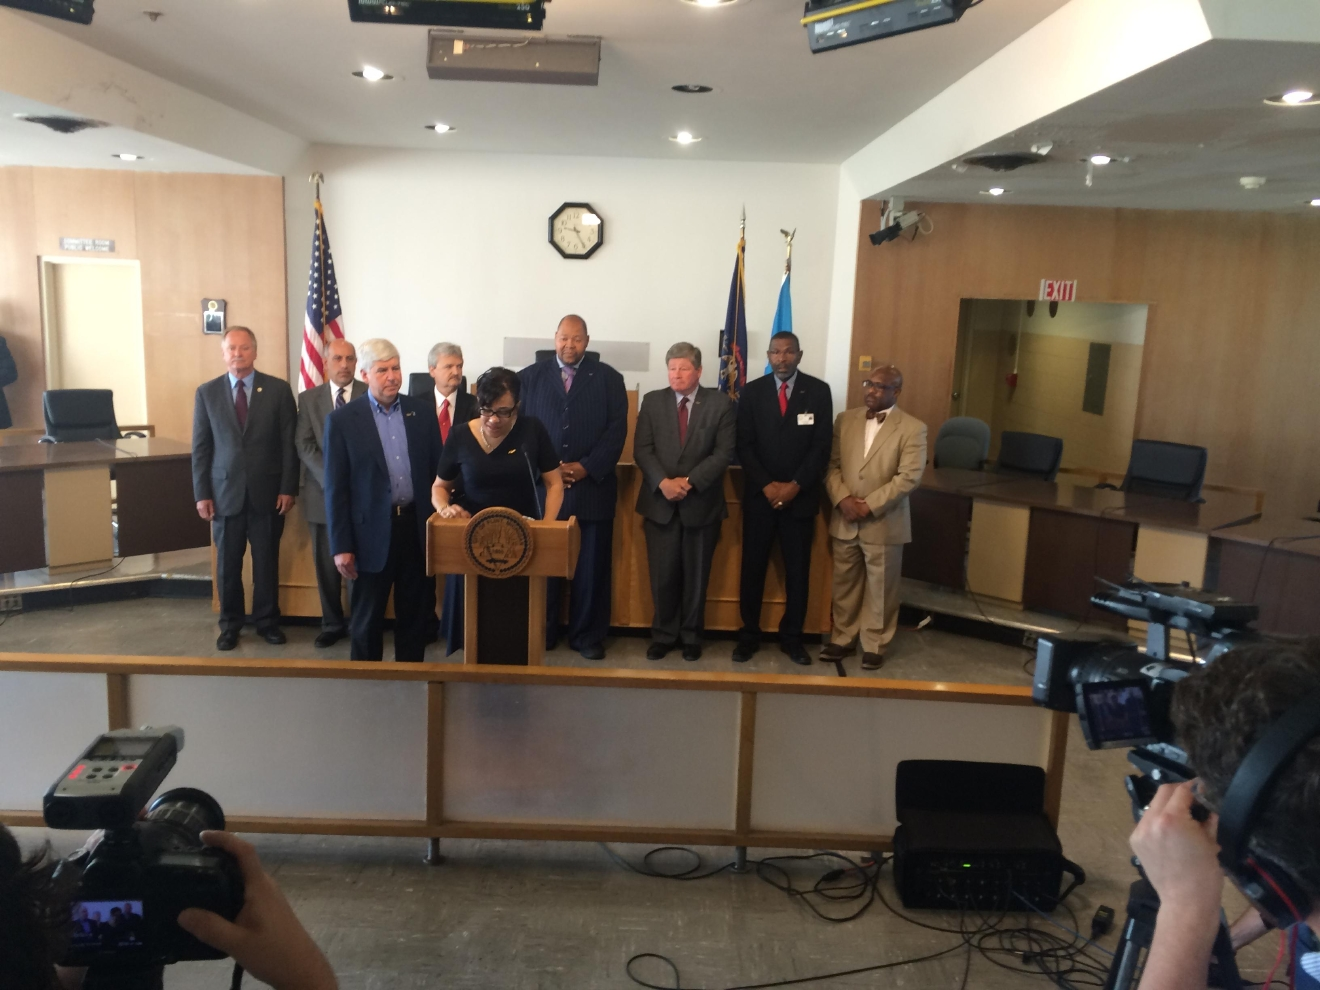 Michigan Gov. Rick Snyder and Flint Mayor Karen Weaver held a joint press conference Tuesday, June 21, 2016 to announce the future of Flint water. (Mike Horne - NBC25/FOX66 News)